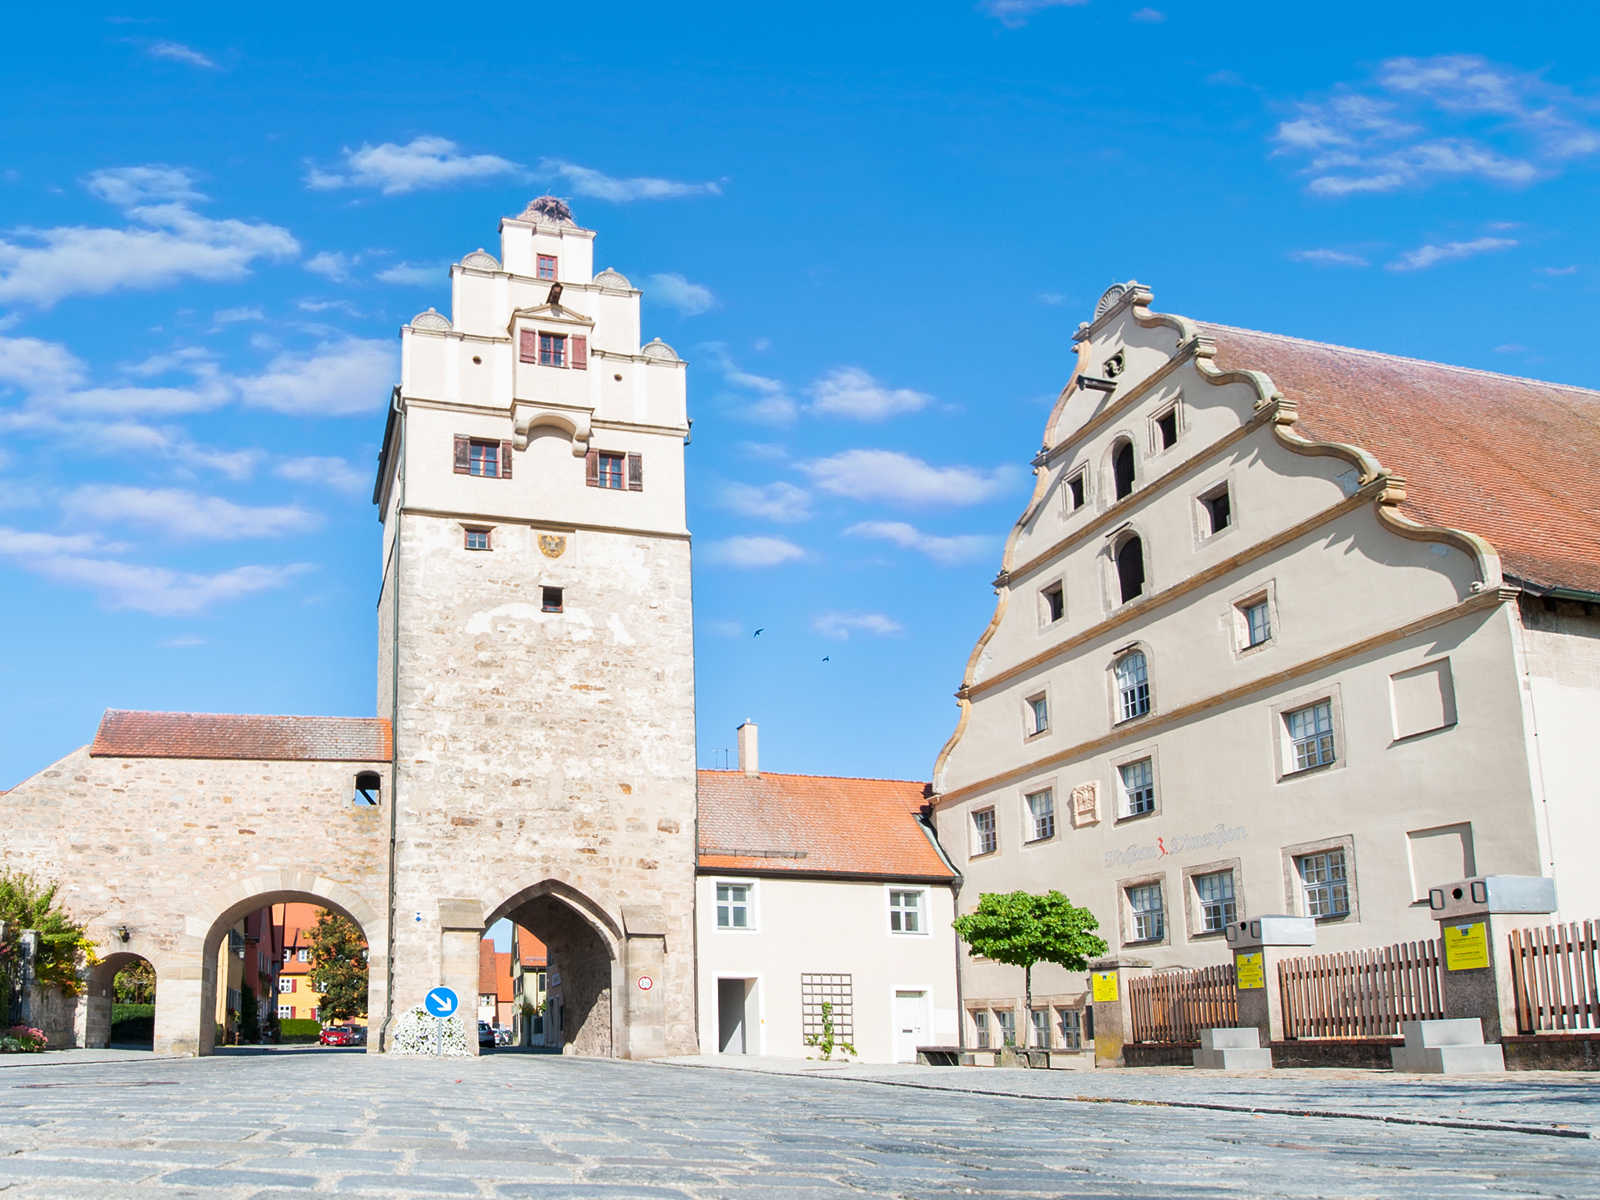 Nördlingen Gate and Town Mill